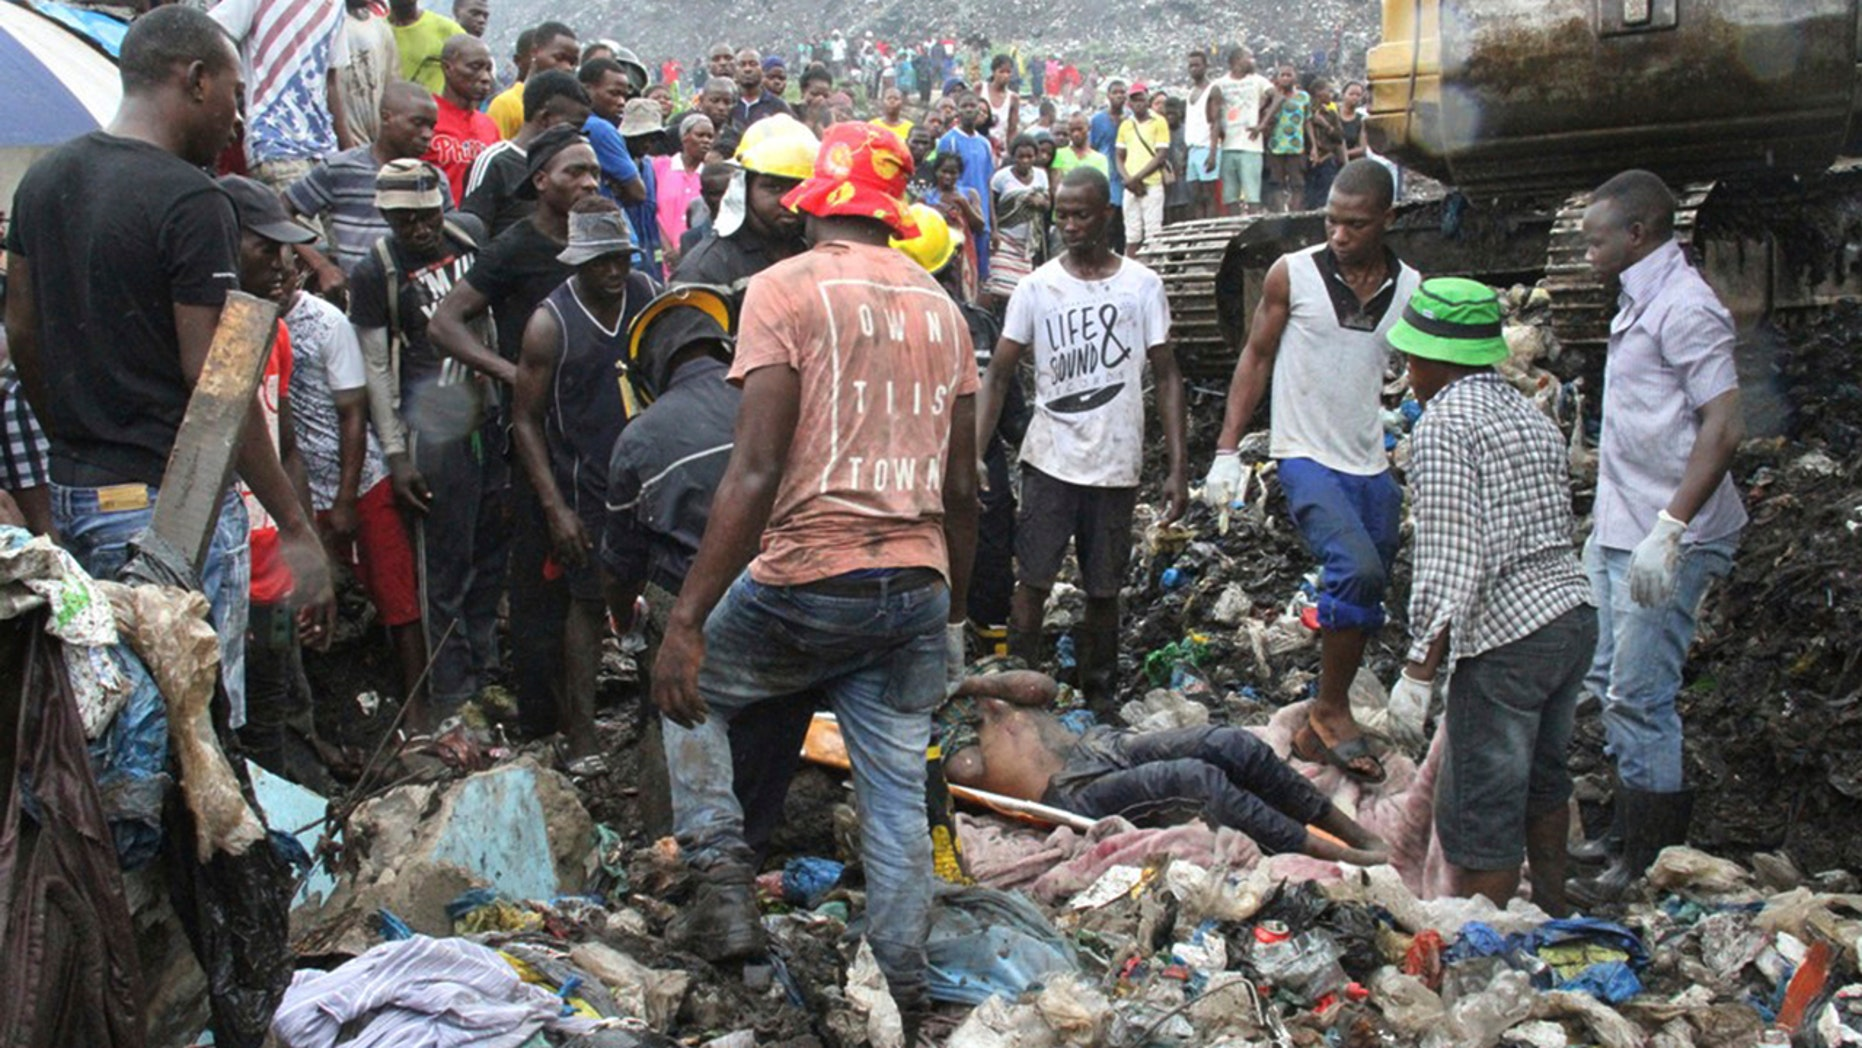 Rescuers recover a body as they search for survivors at the collapse of a garbage mound in Mozambique.